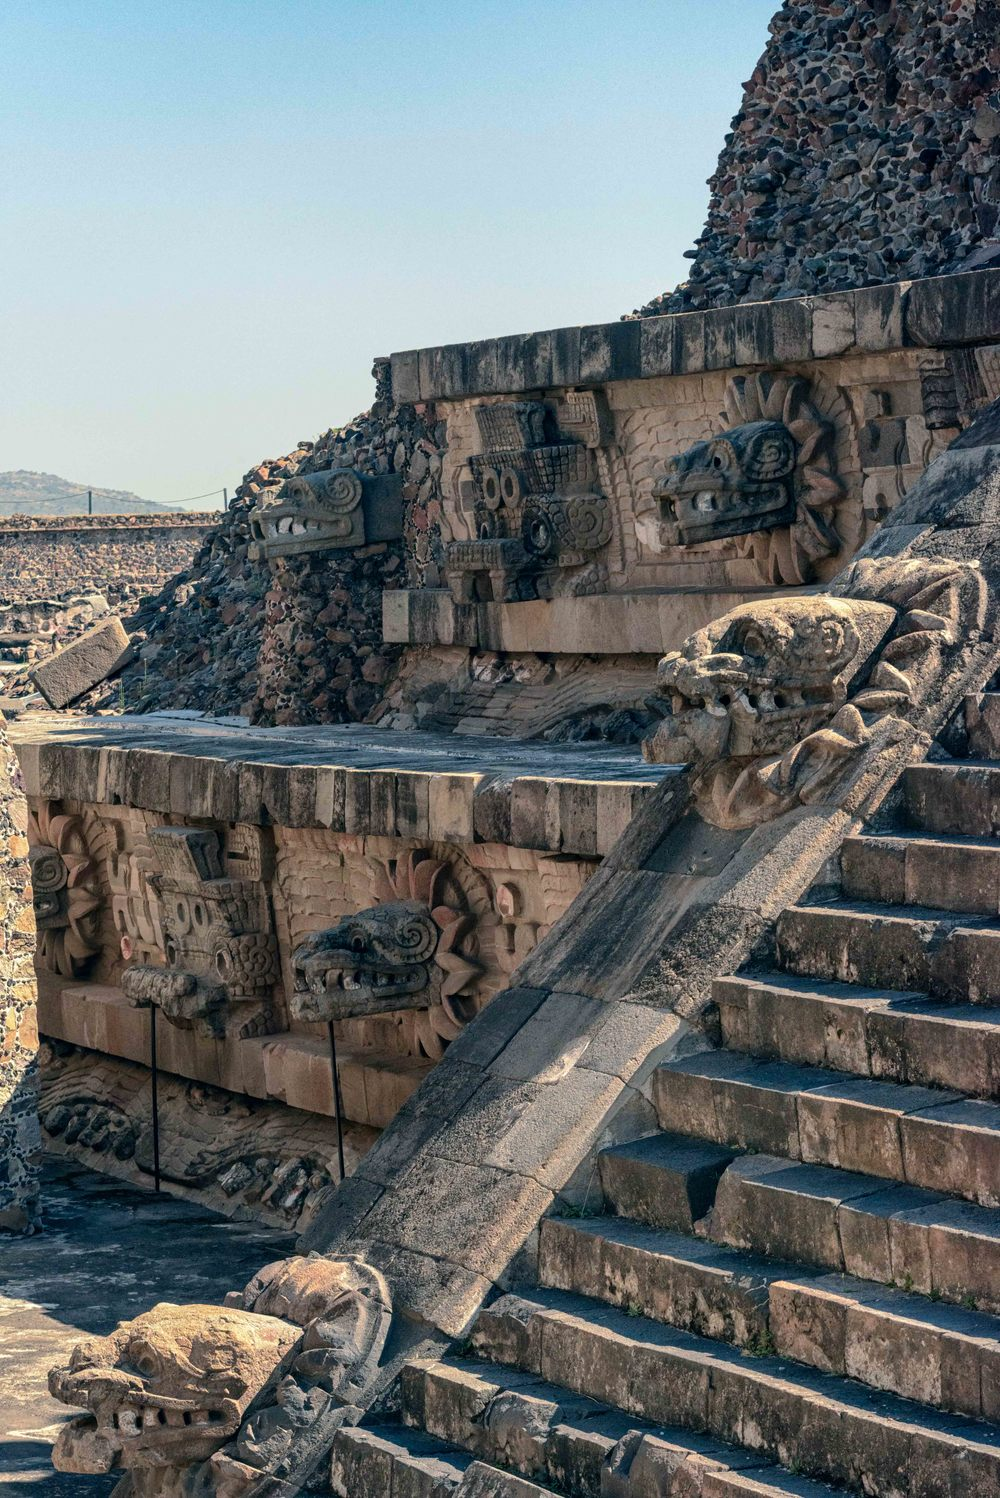 The left side of the Pyramid of the Feathered Serpent, from the steps of the Adosada platform.